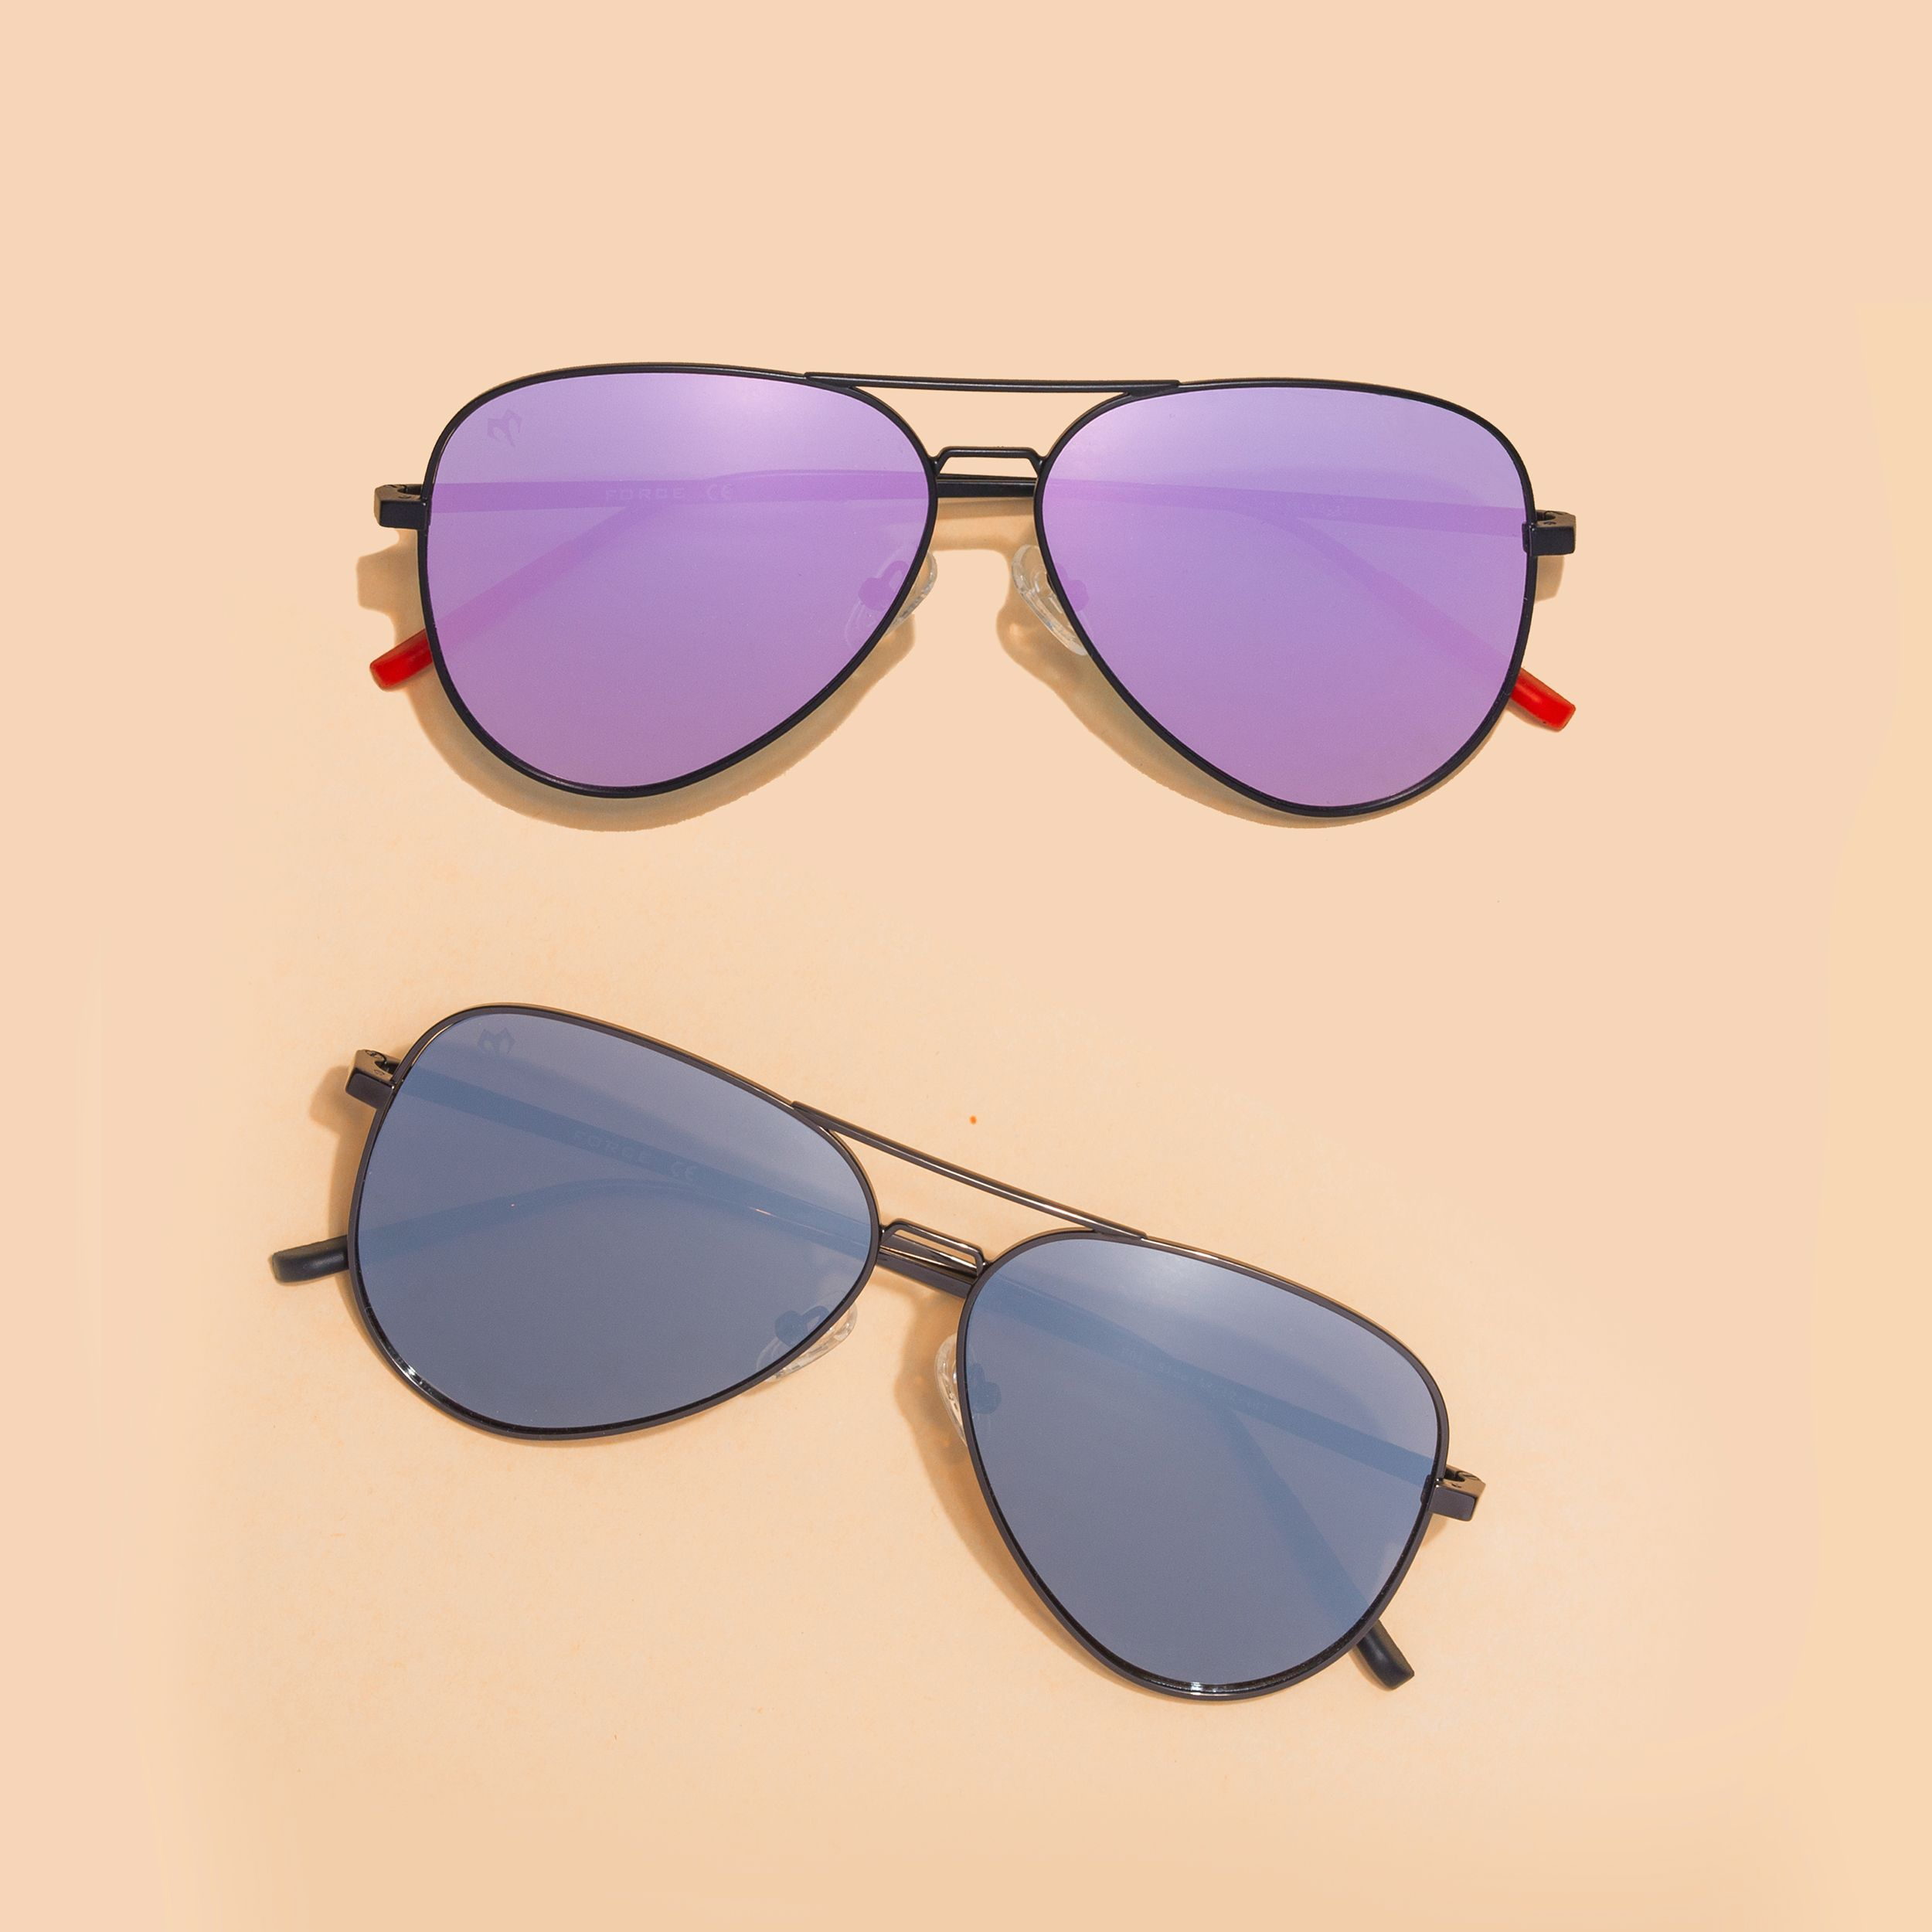 b6f2071808e The aviator sunglasses from the Force collection by Marsquest are 100% UV  protected